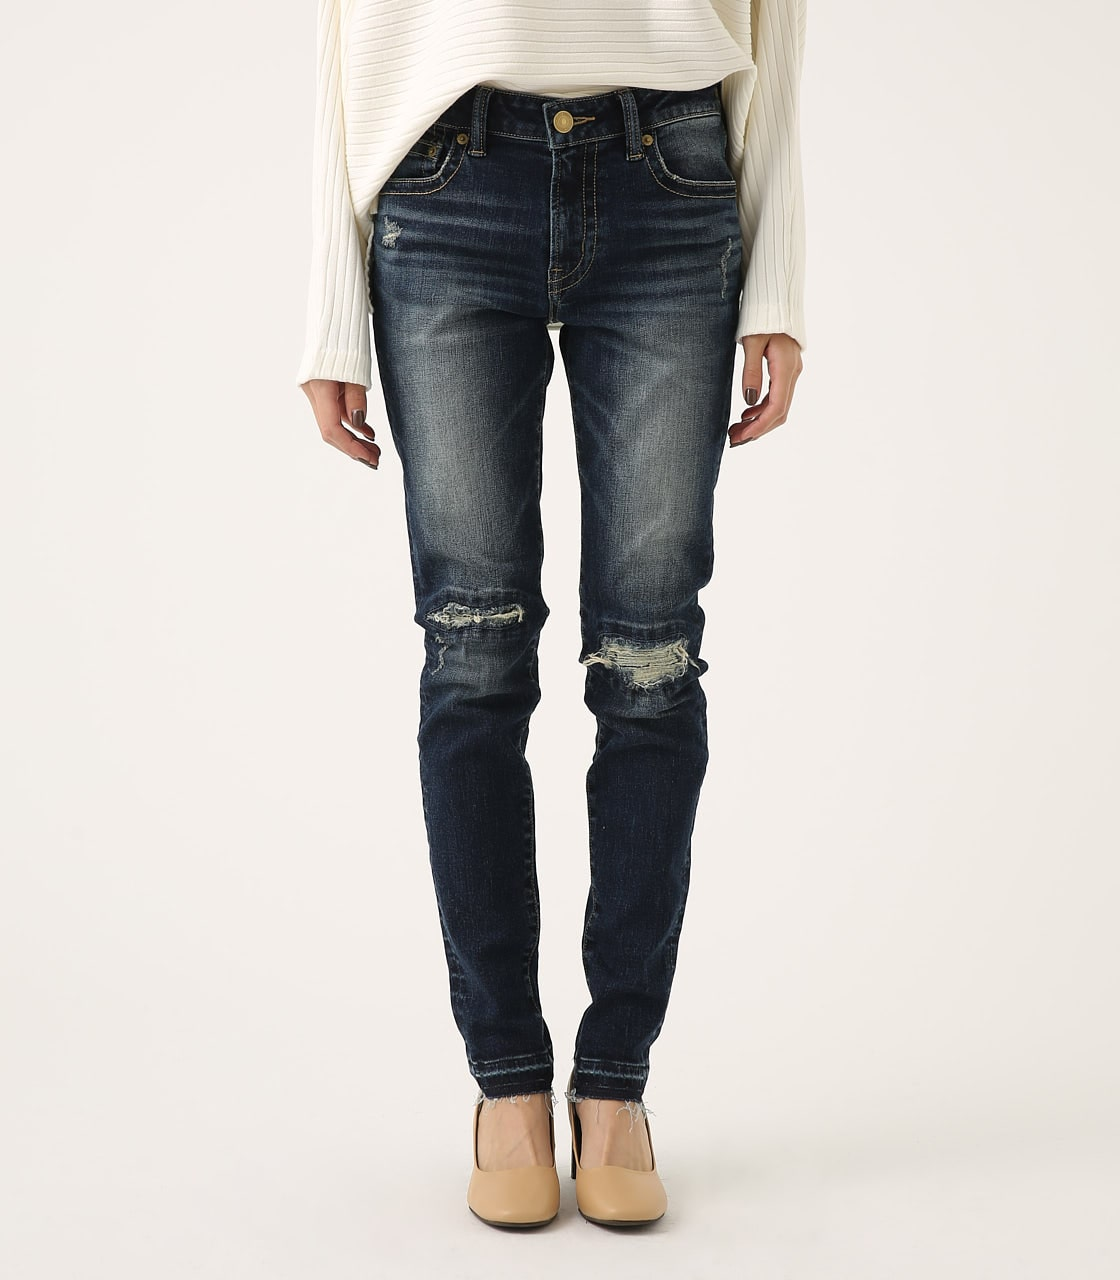 REPAIR DENIM SKINNY 詳細画像 D/BLU 5